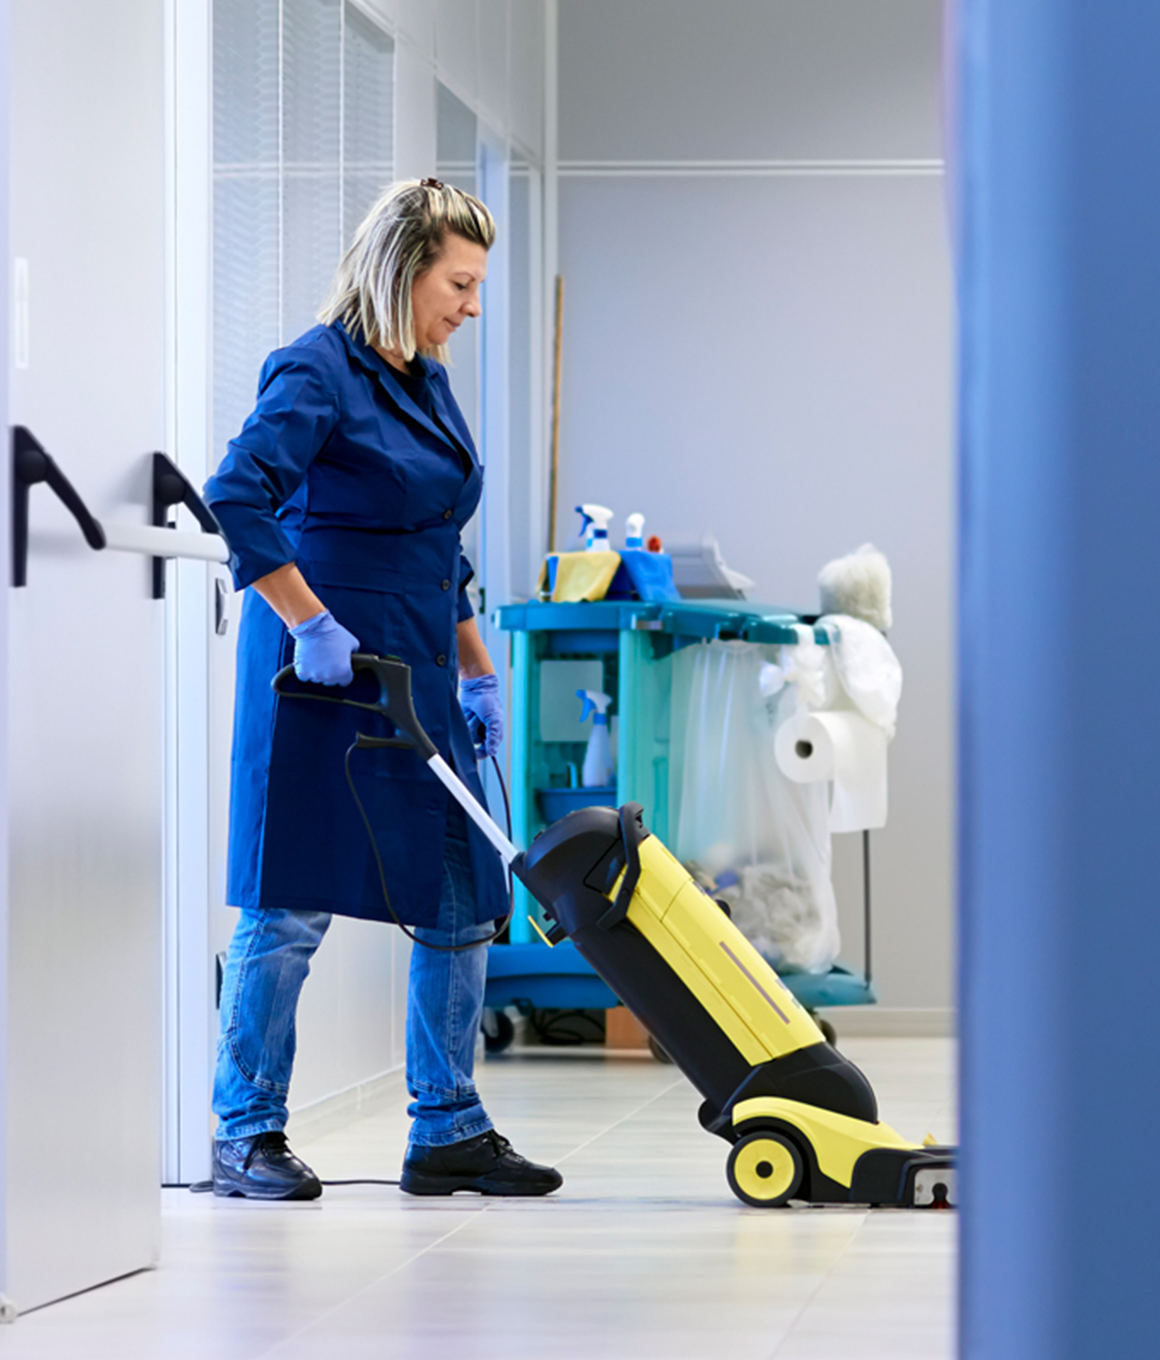 Woman cleaning the floors with a heavy duty vacuum